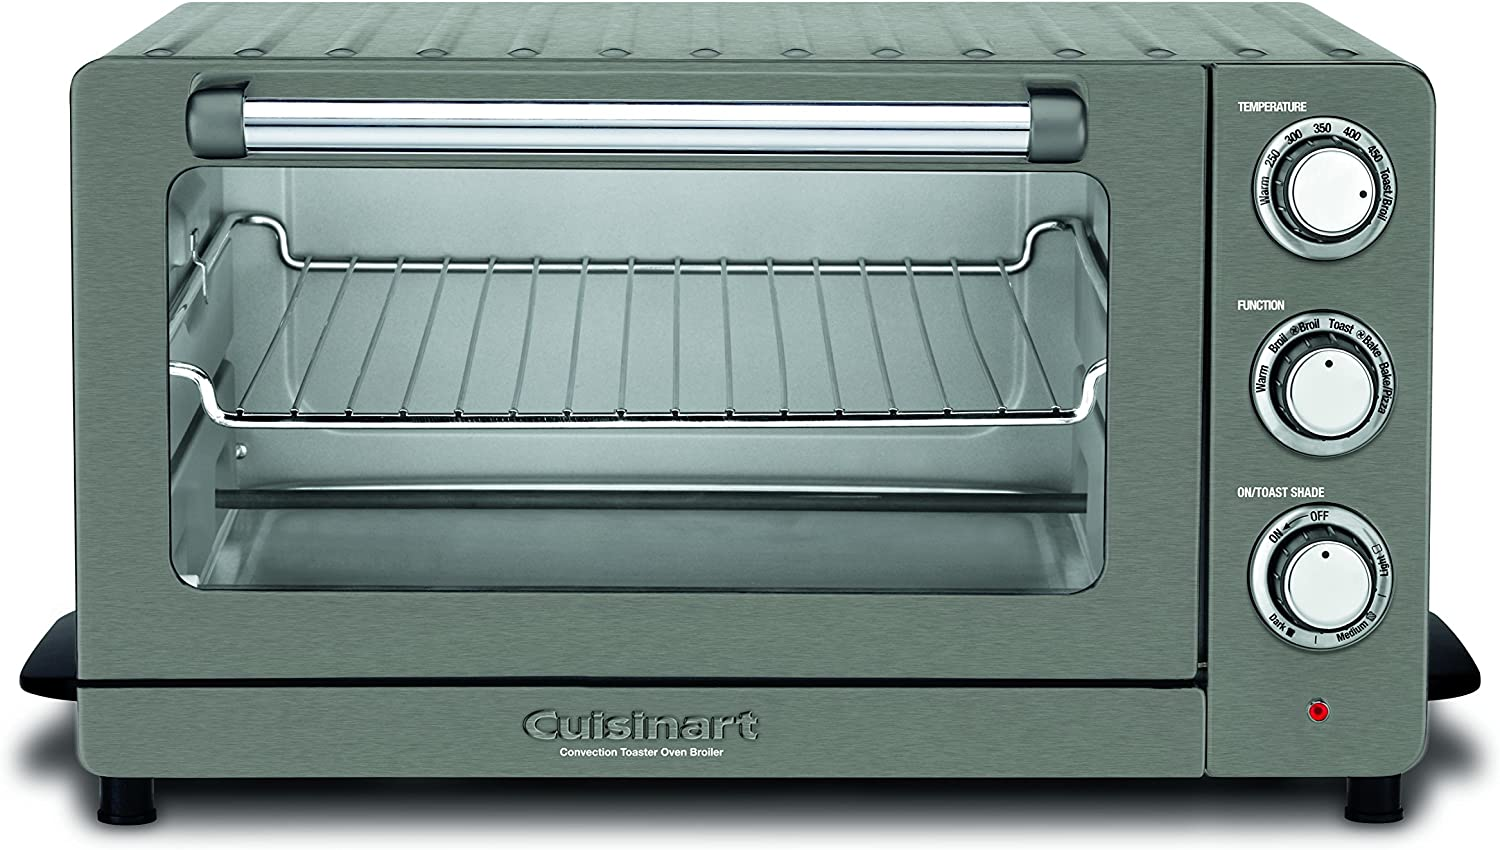 Cuisinart Convection Toaster Oven Broiler, 19.1